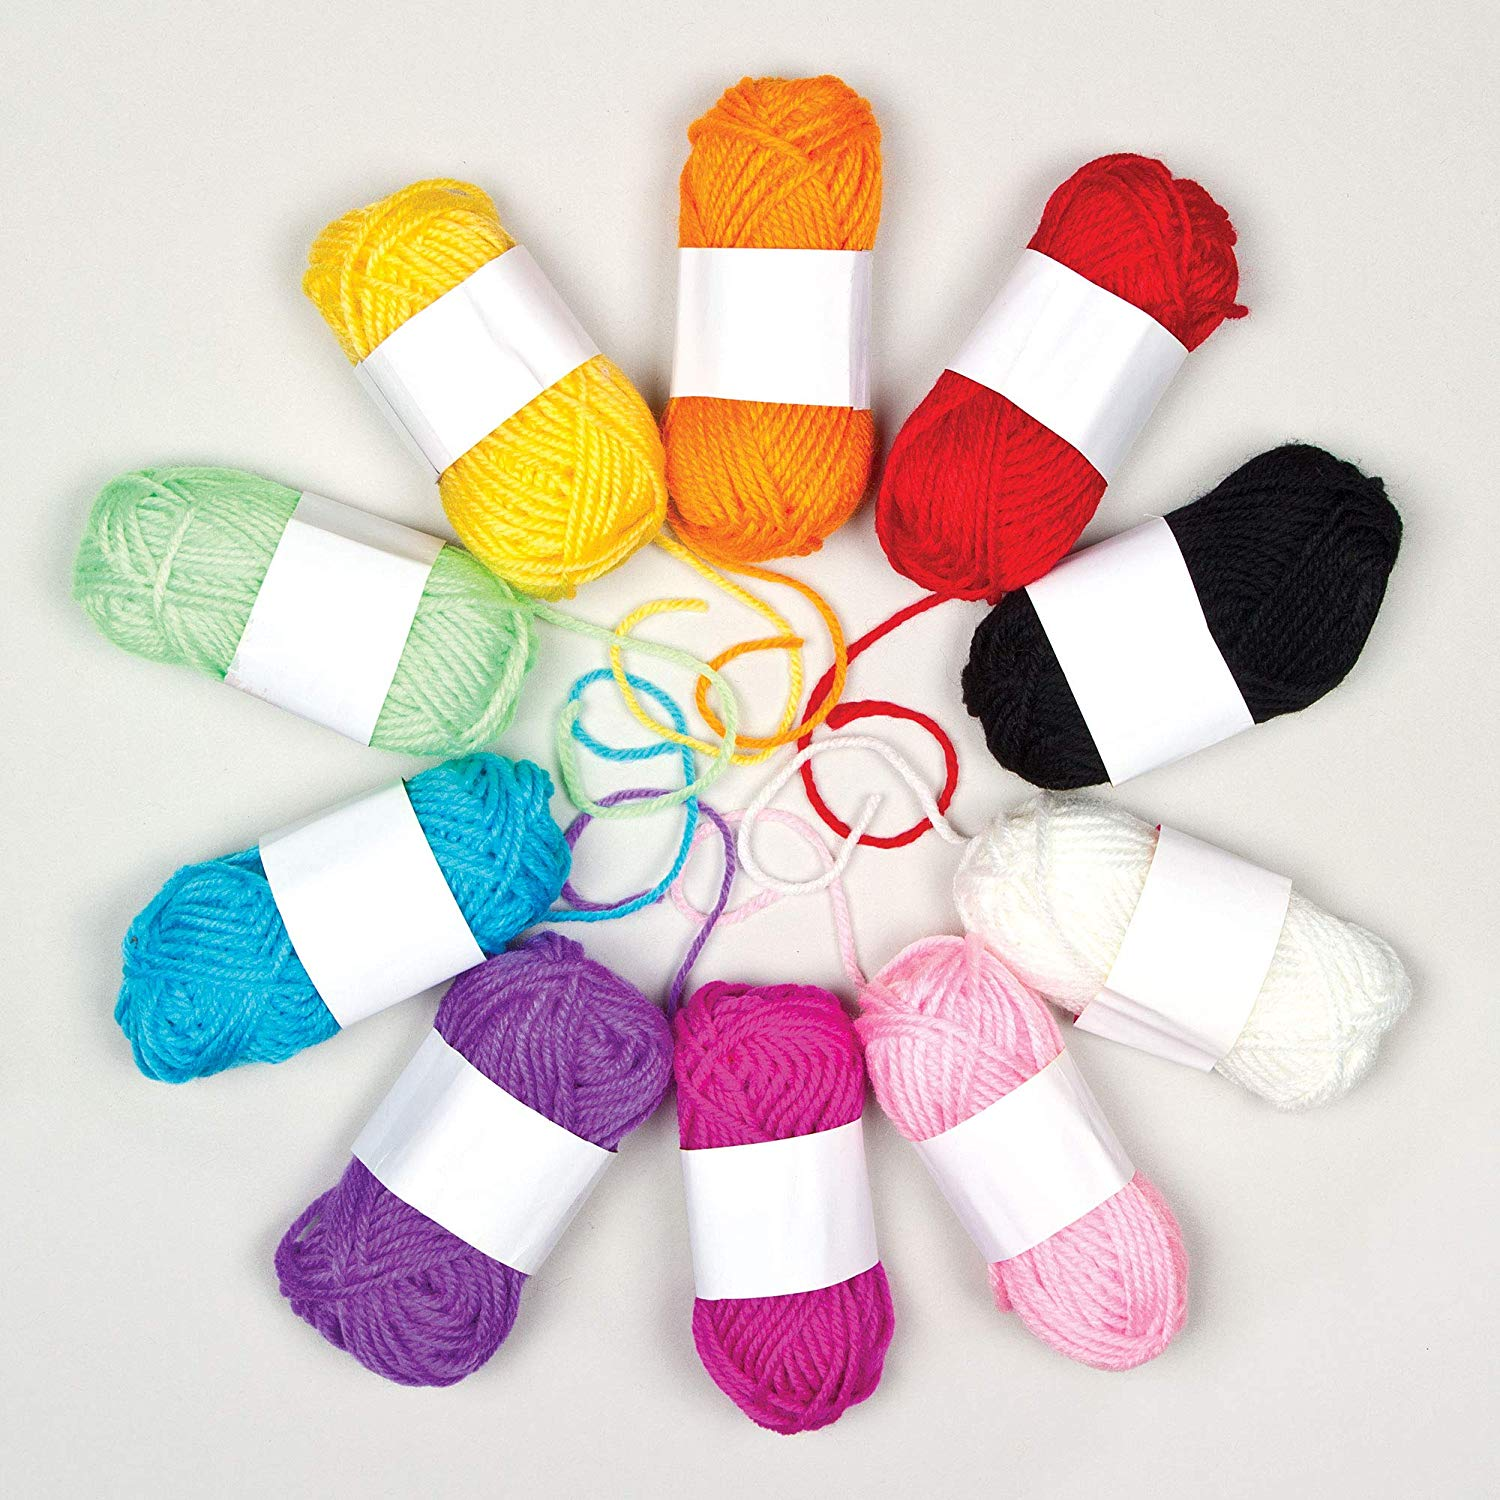 Baker Ross Coloured Wool (Pack Of 10) For Kids Arts and Crafts